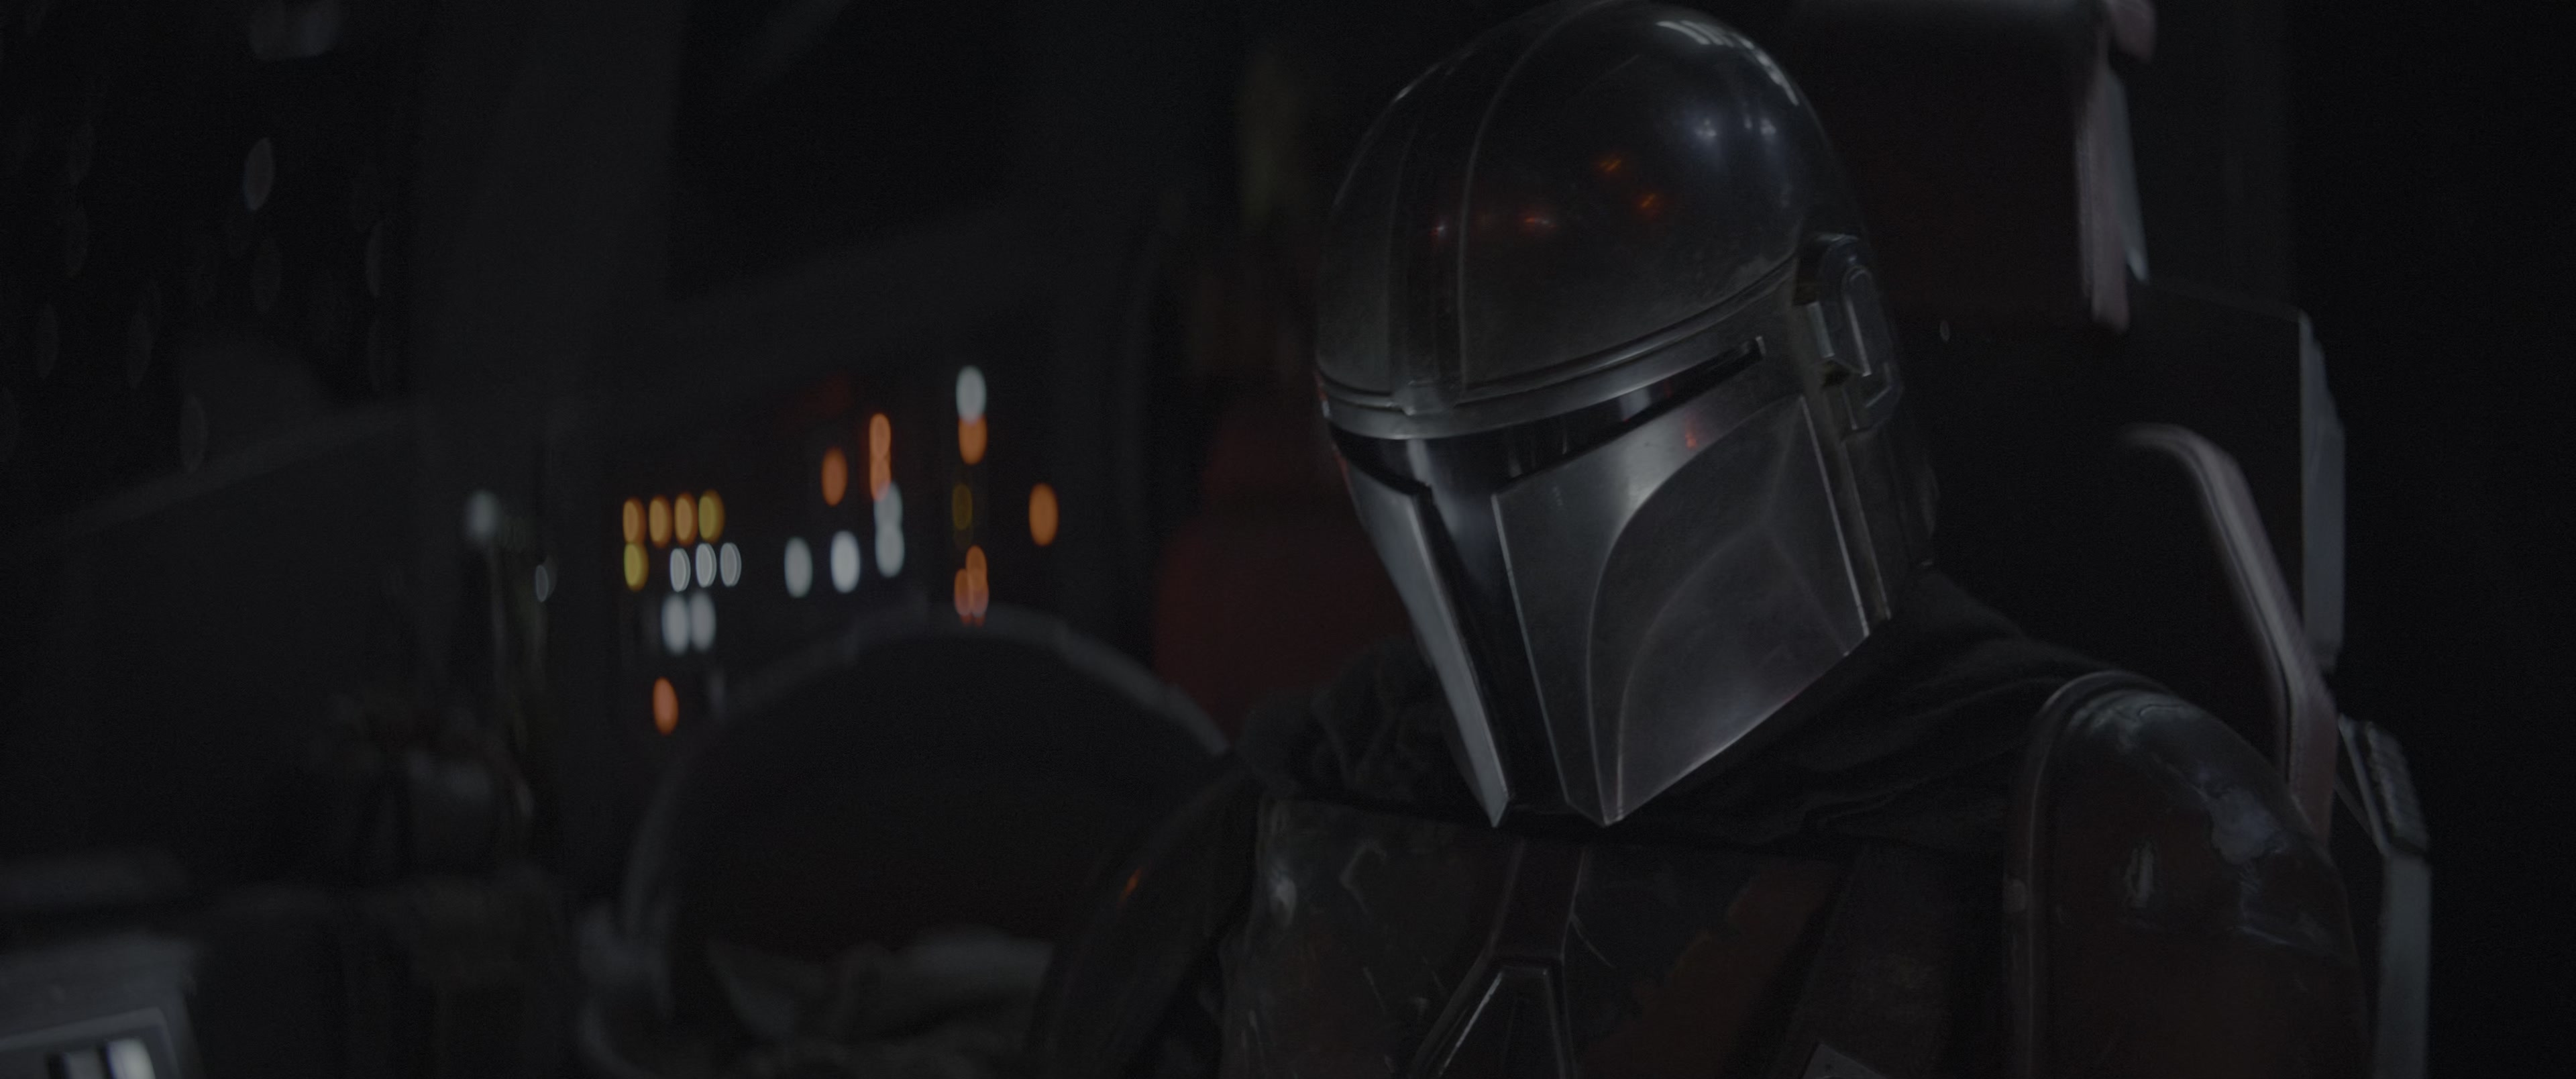 The Mandalorian - s01e02 - The Child 573.jpg